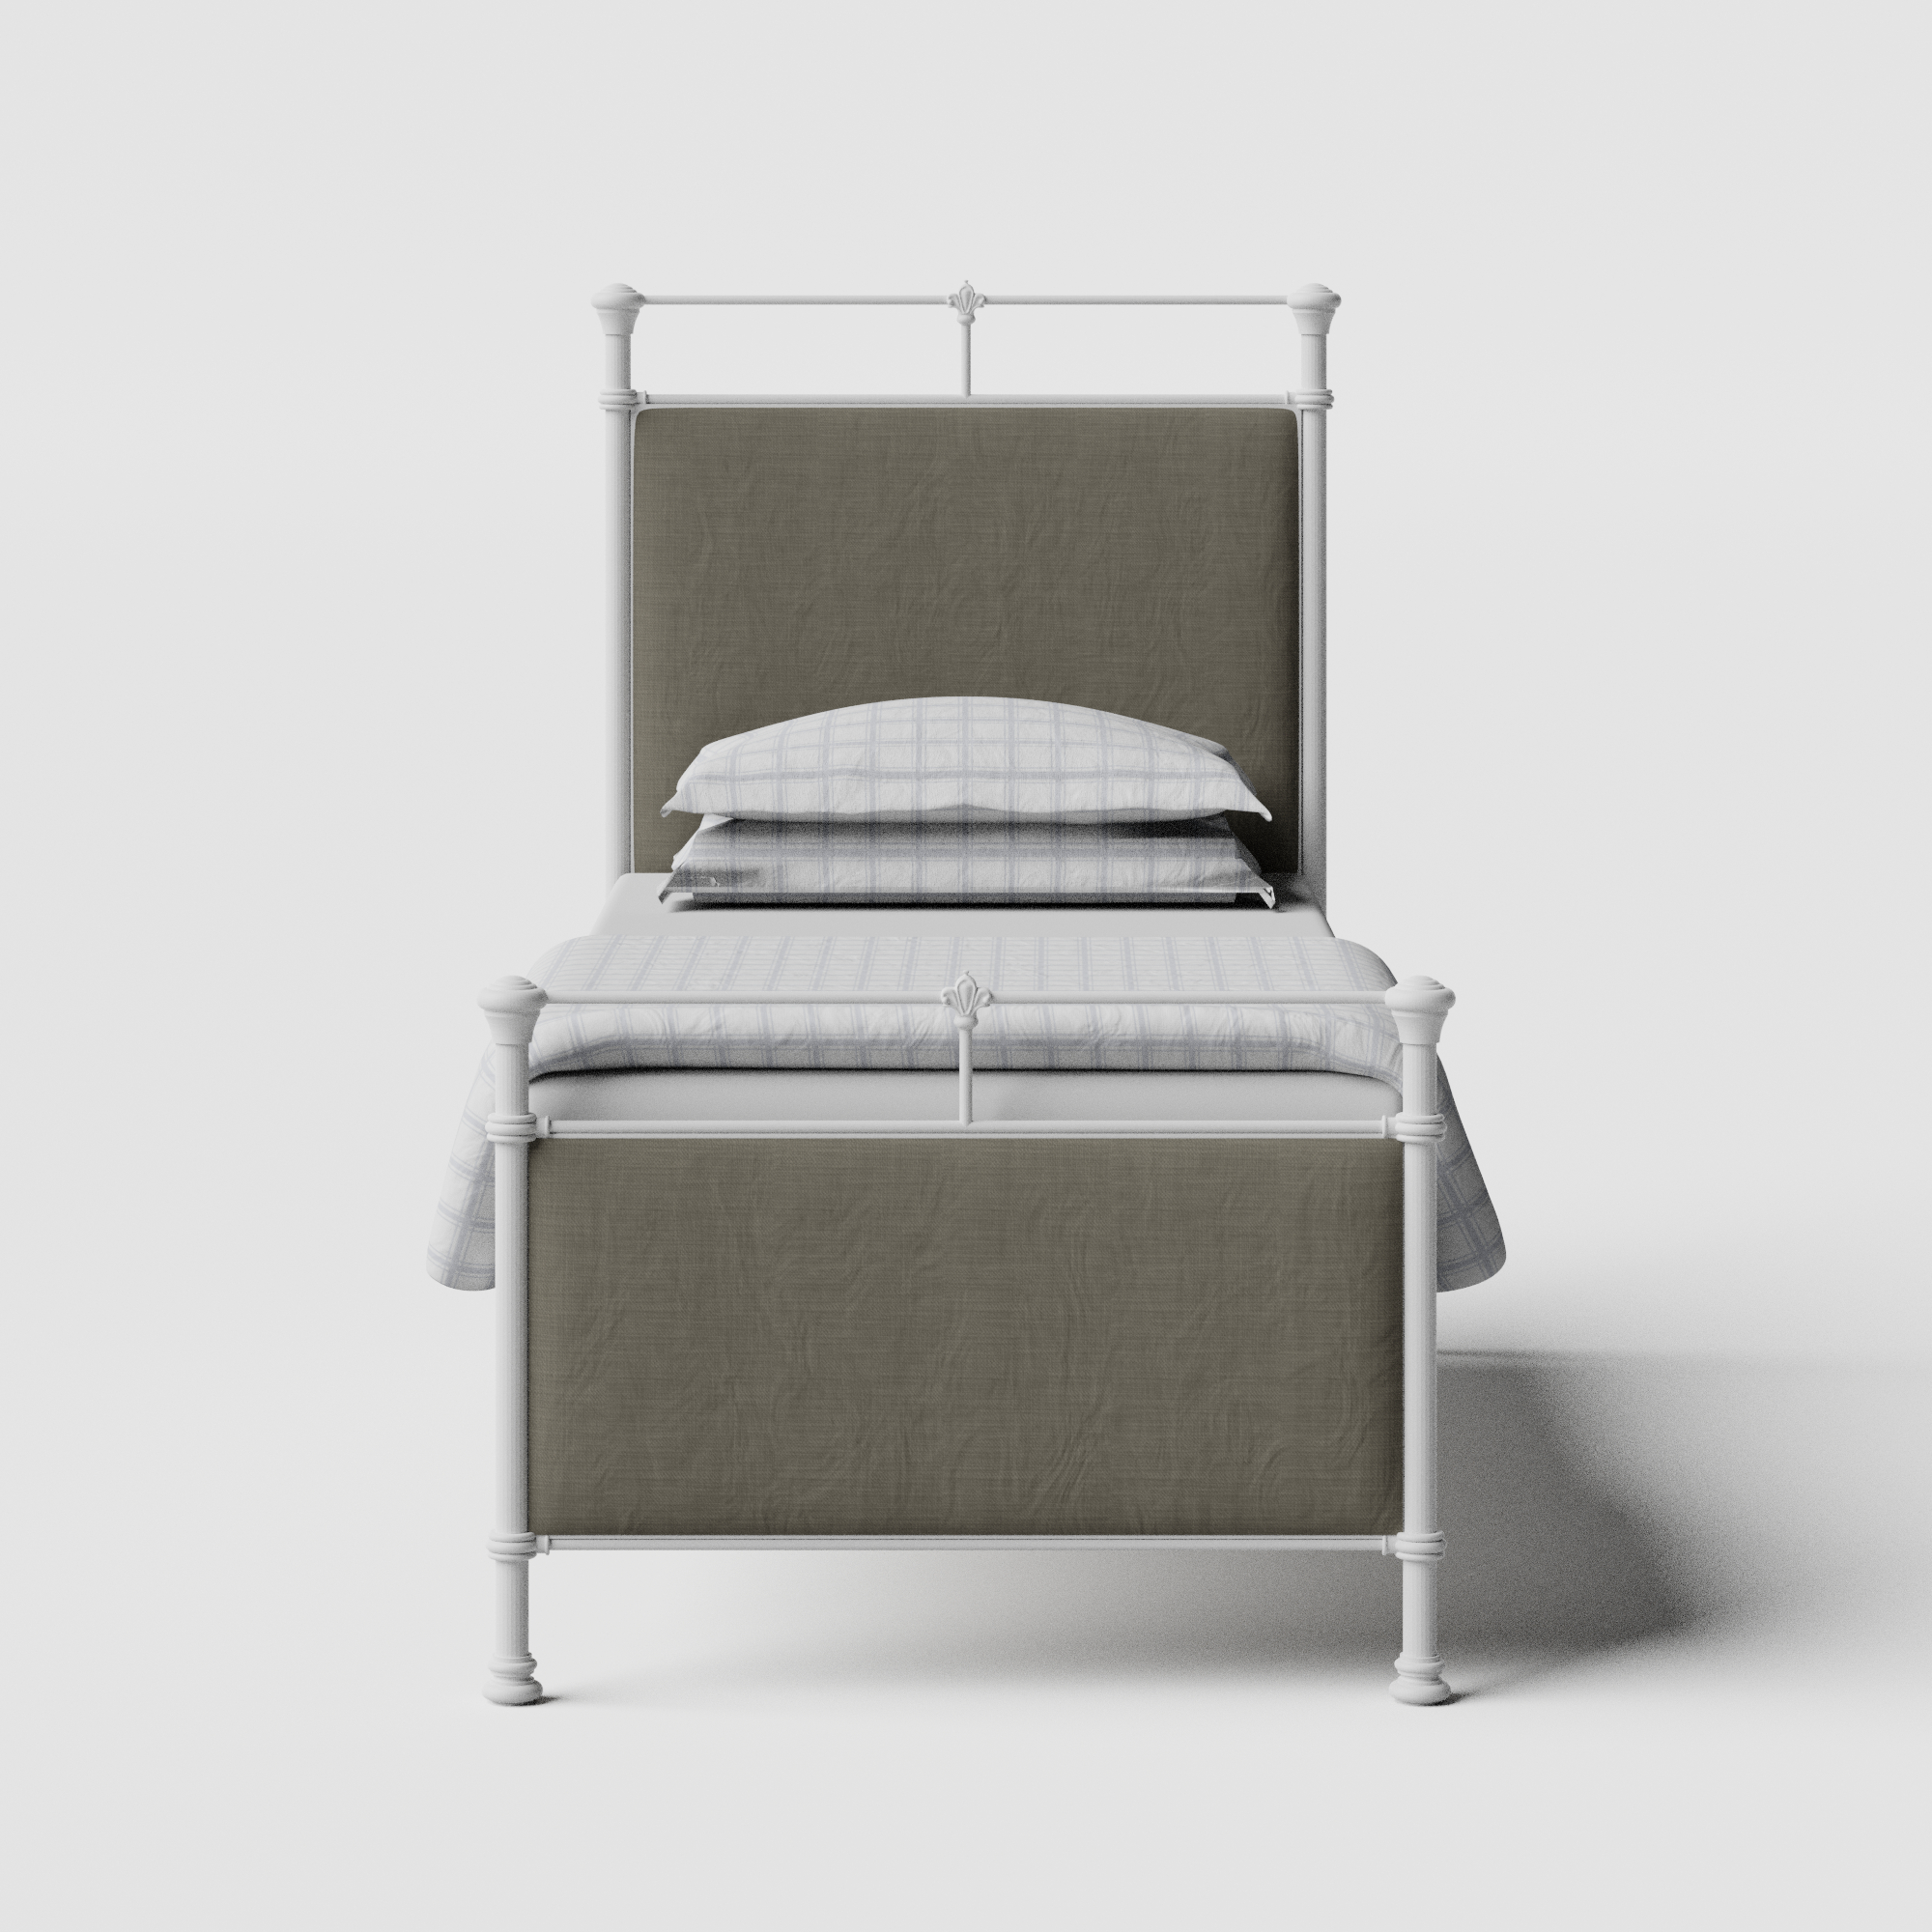 Nancy iron/metal single bed in white